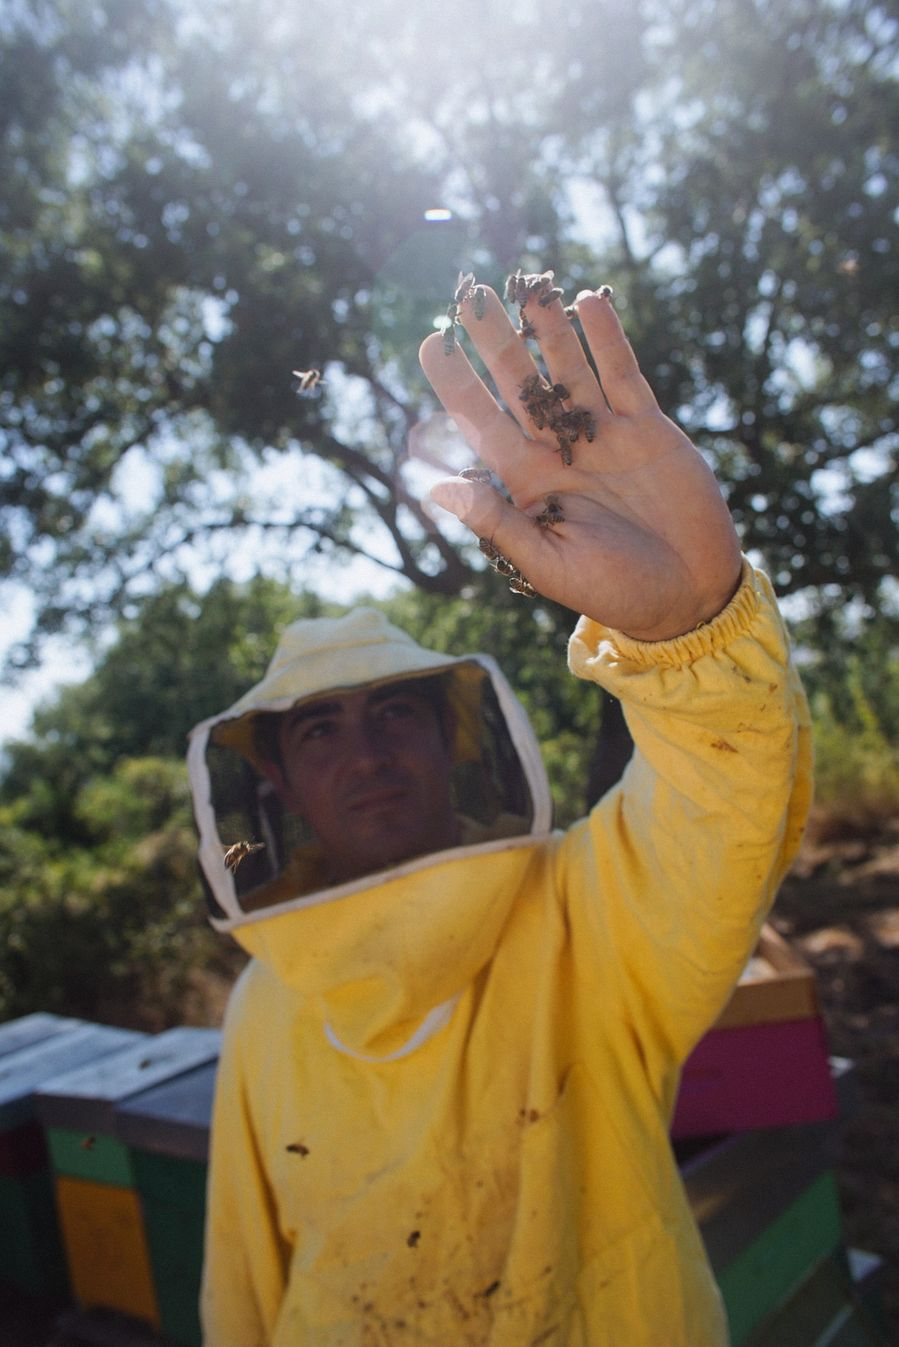 A beekeeper holds bees in his bare hands in the dappled sunlight.